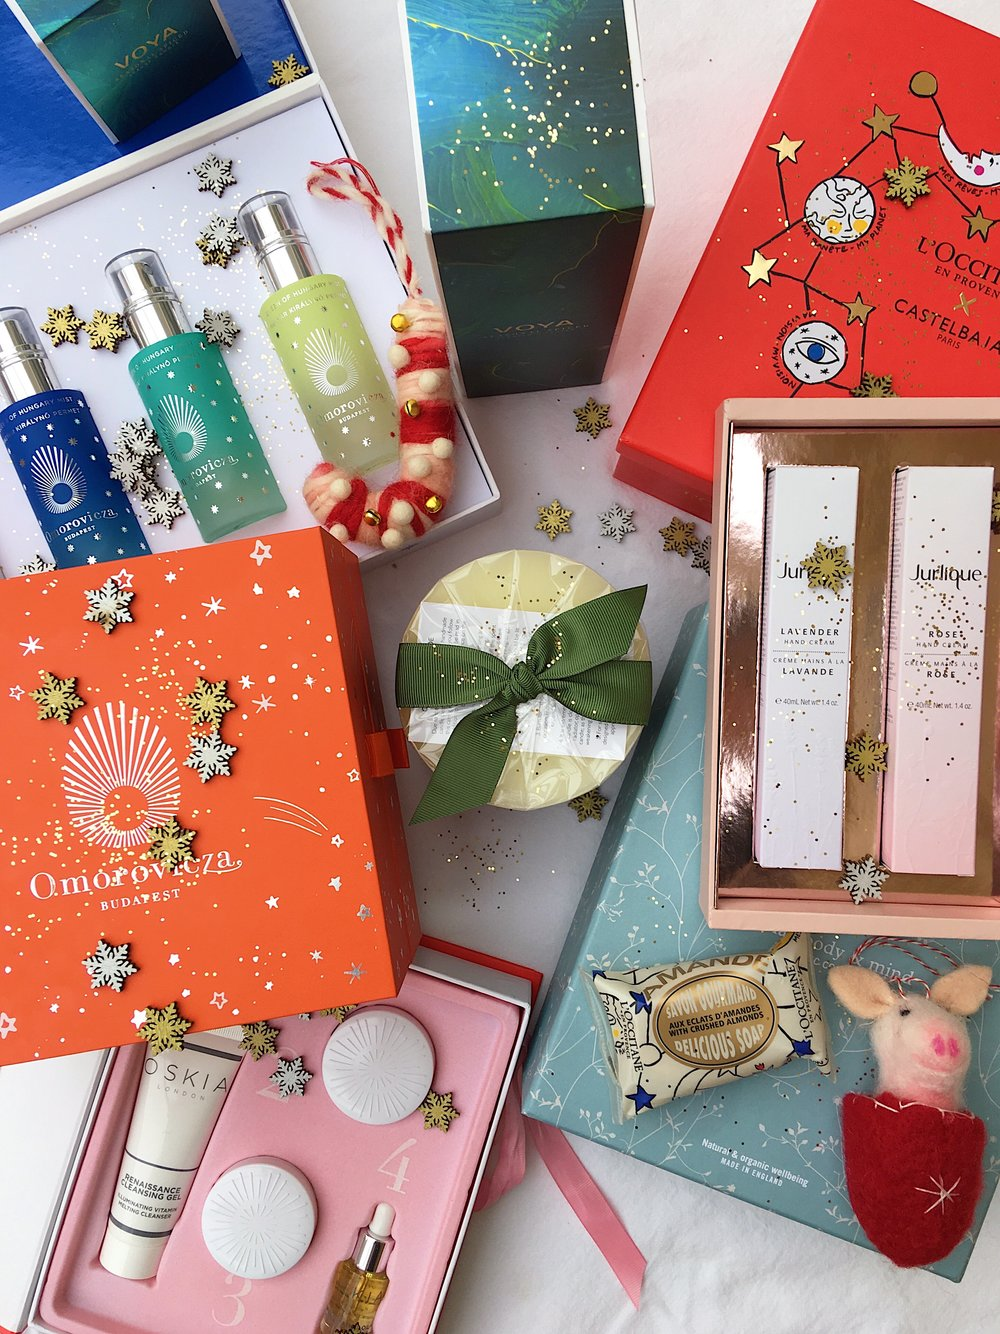 - To all the beauty lovers out there, this big beauty Christmas gift guide is for you. Featuring the most glorious skincare sets of all time from Oskia and Omorovicza to indulgent relaxation essential oil sets and aromatic foaming bath from Aromatherapy Associates and Neals Yard and if whom you're gifting is a candle obsessive then I've rounded up the top winter candles to gift this year to… Enjoy!